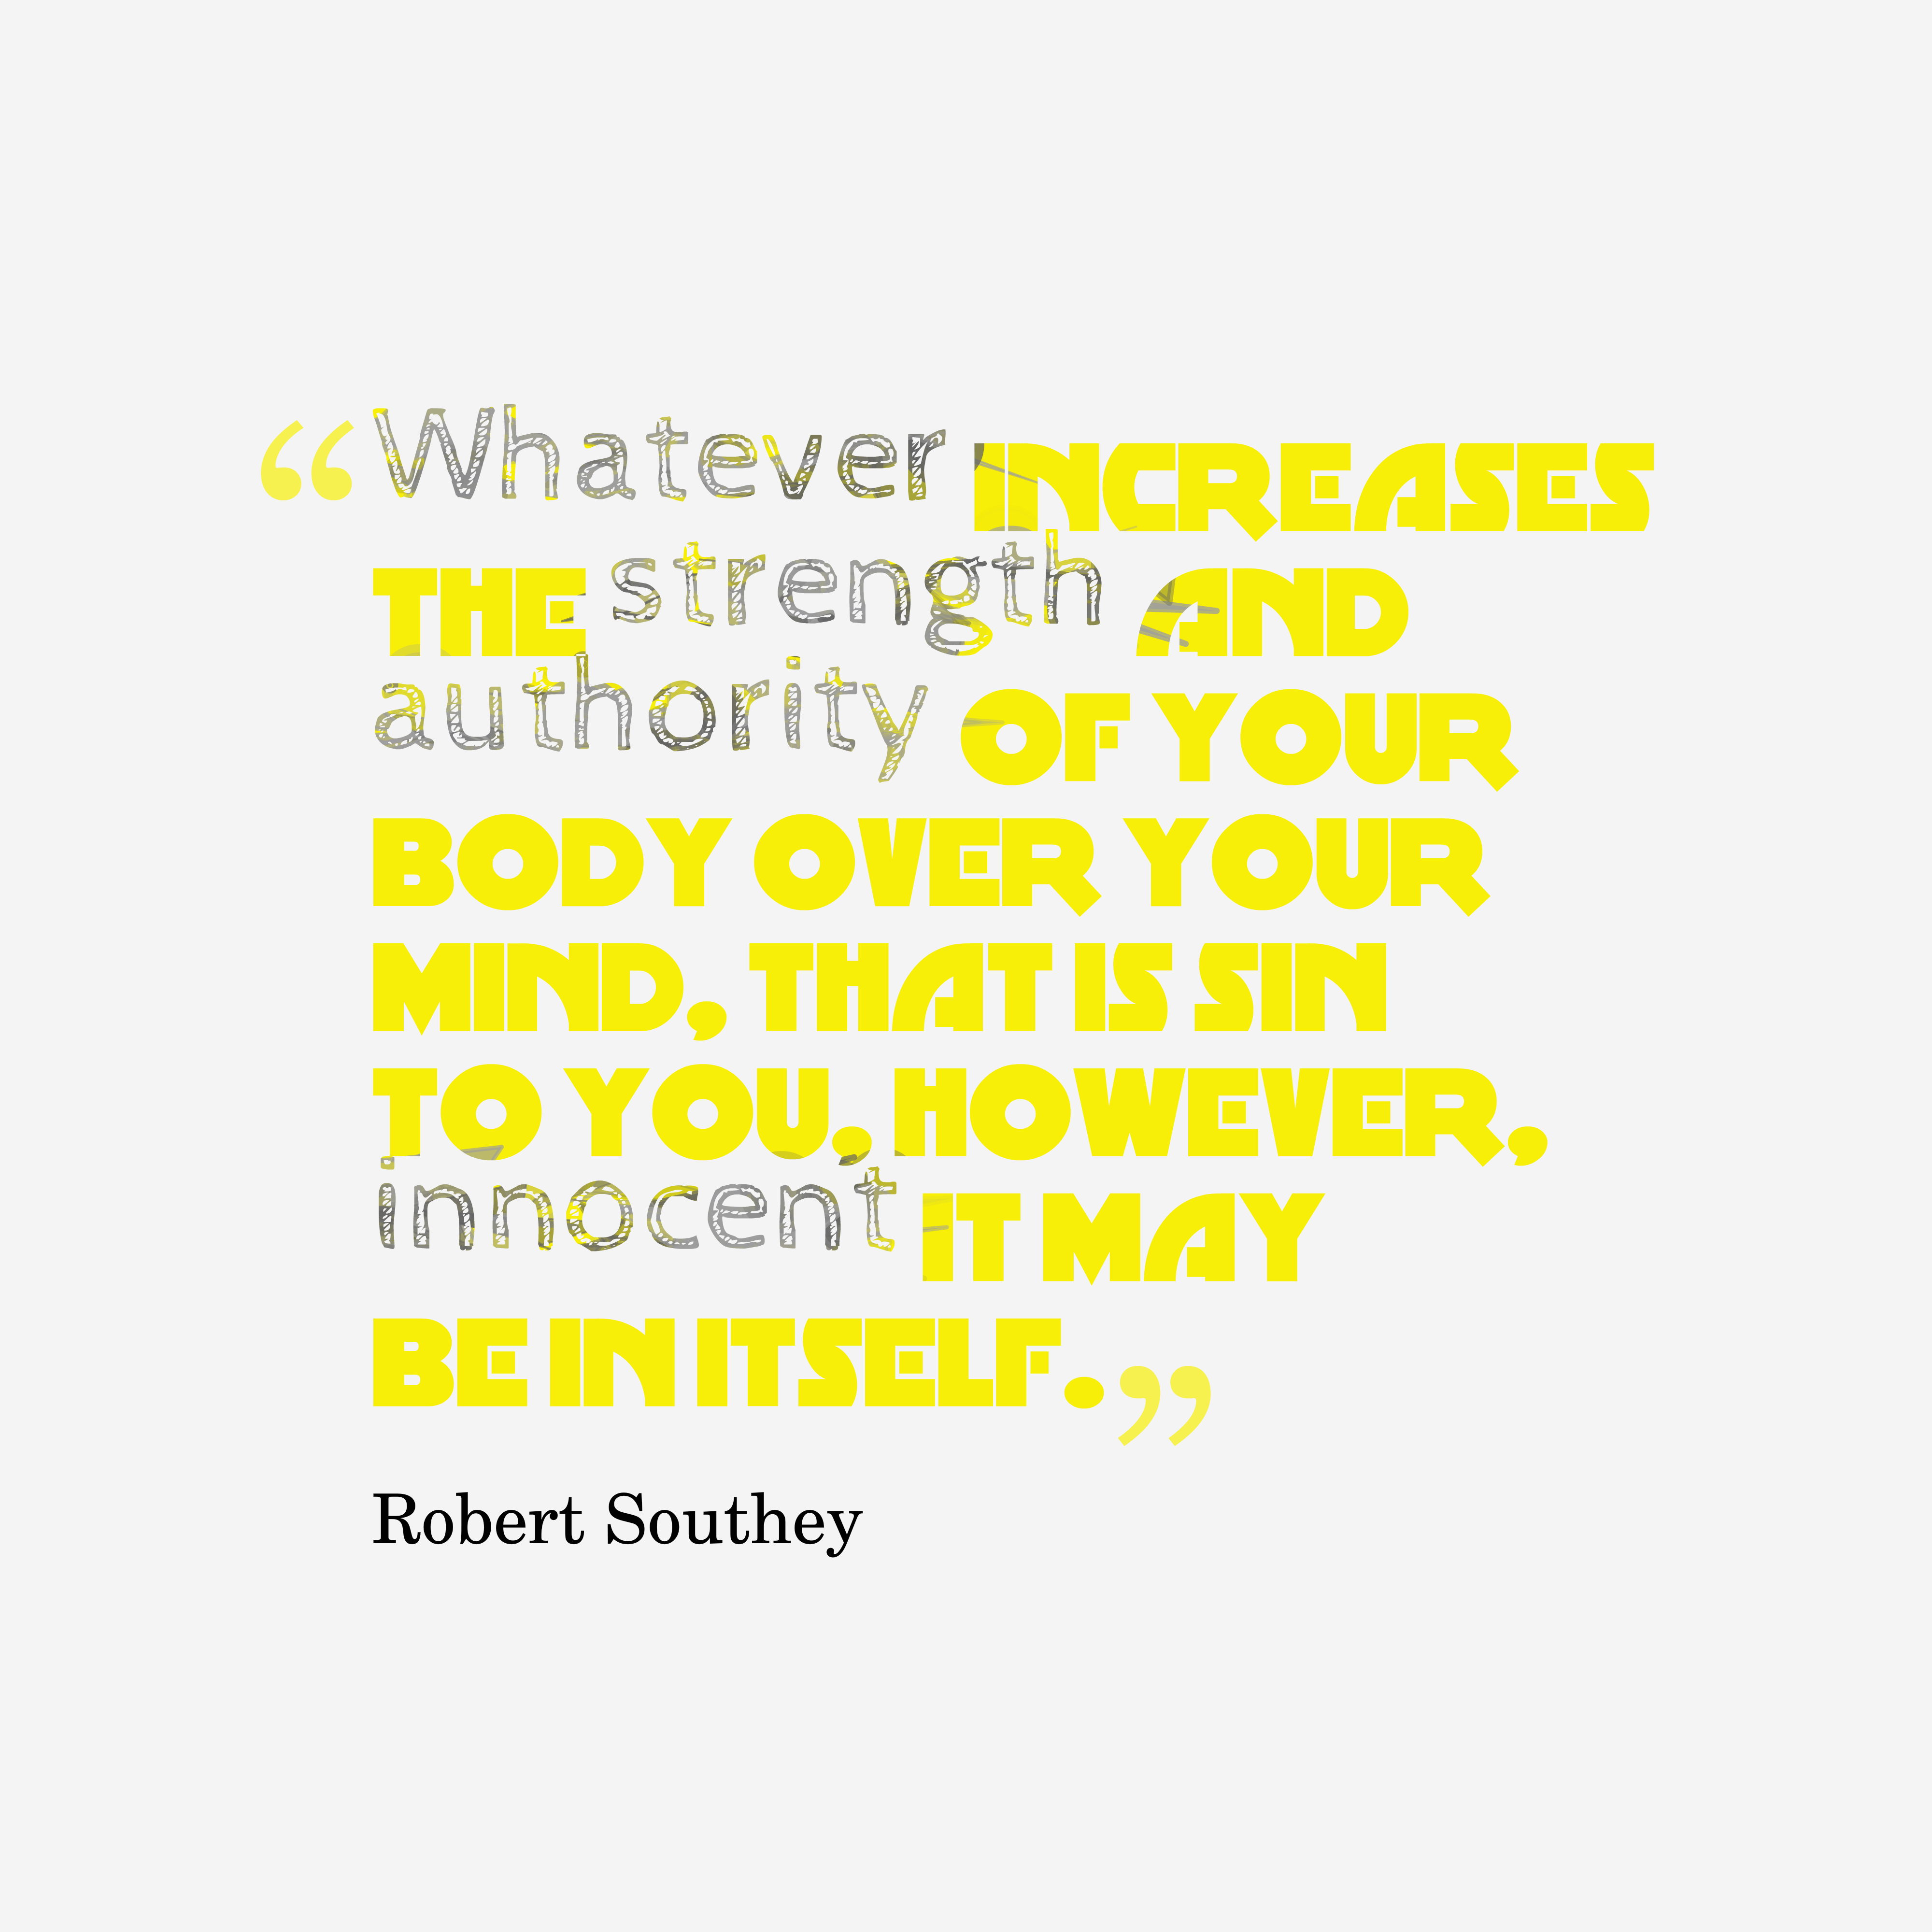 Robert Southey Quote About Strength